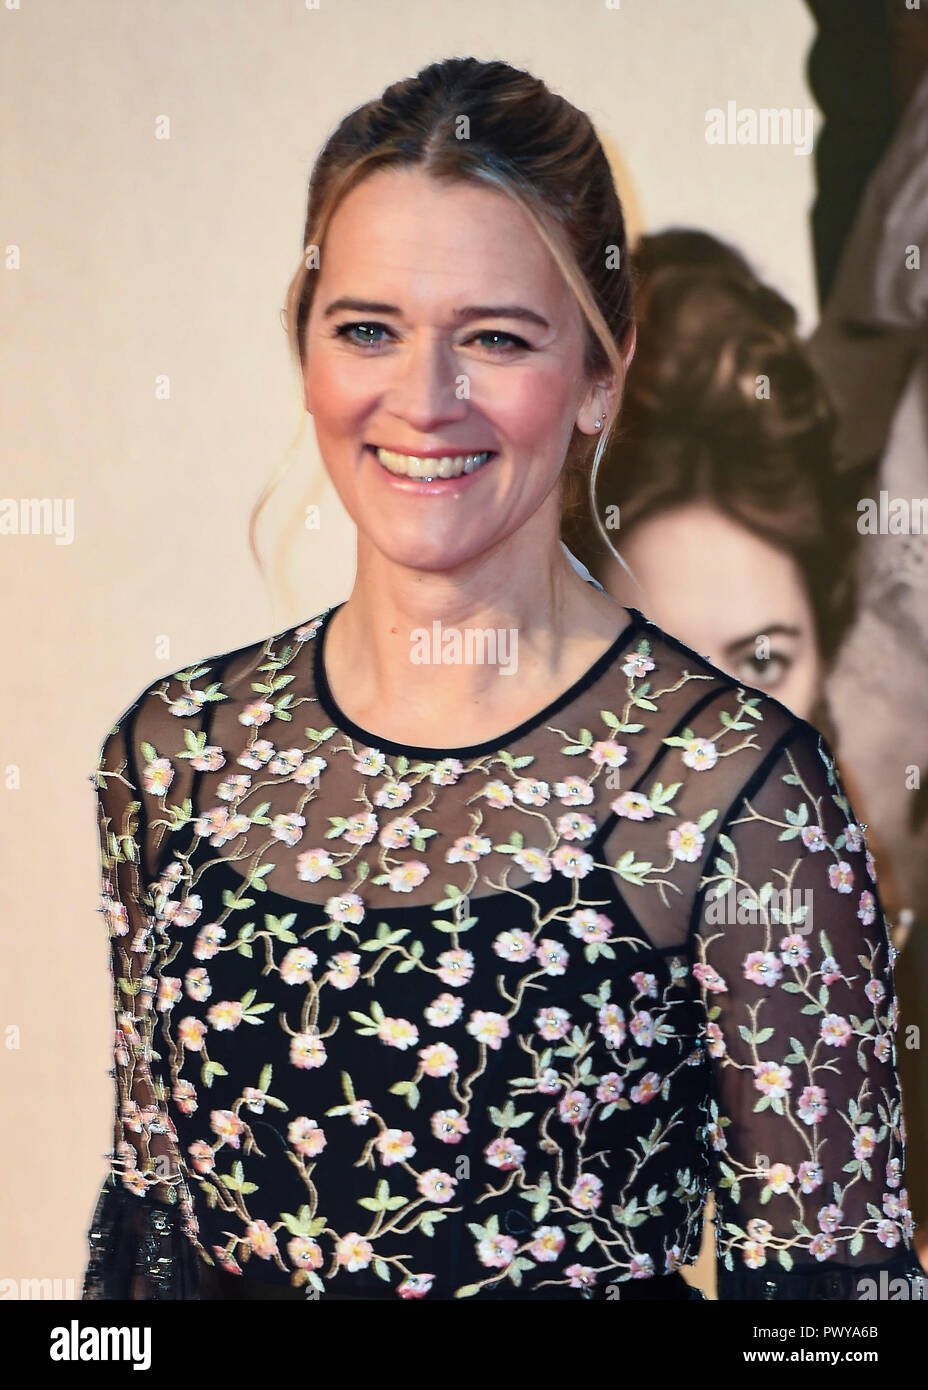 Edith Bowman attends the UK Premiere of 'The Favourite' & American Express Gala at the 62nd BFI London Film Festival. - Stock Image